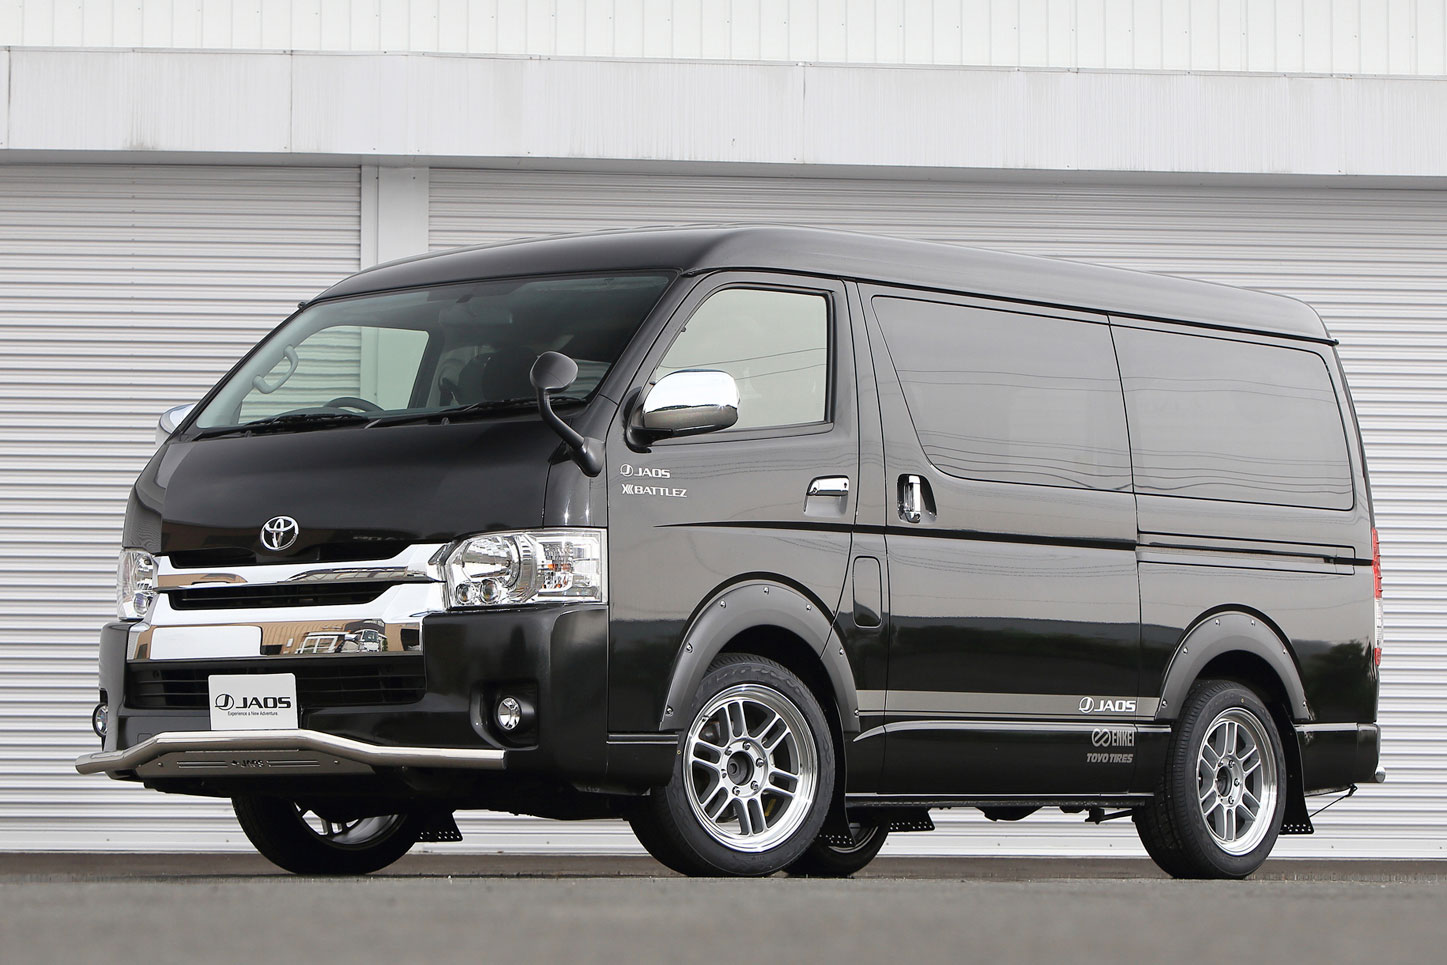 JAOS 200 HIACE (TYPE 4) WIDEBODY